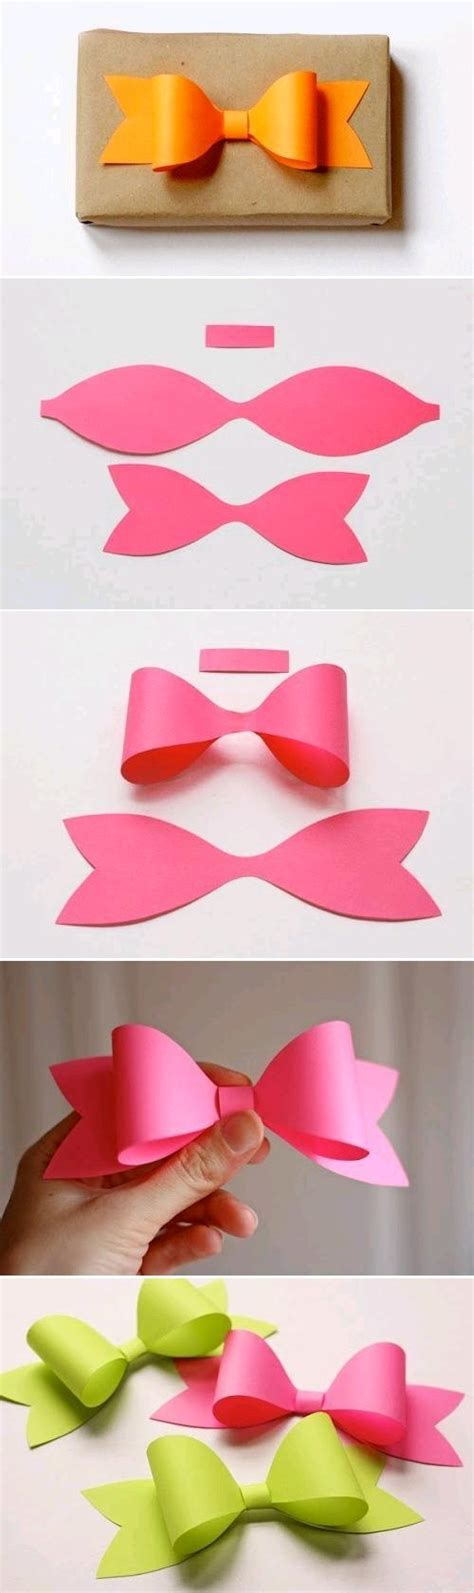 How To Make A Bow With Wrapping Paper - diy modular bow home and diy